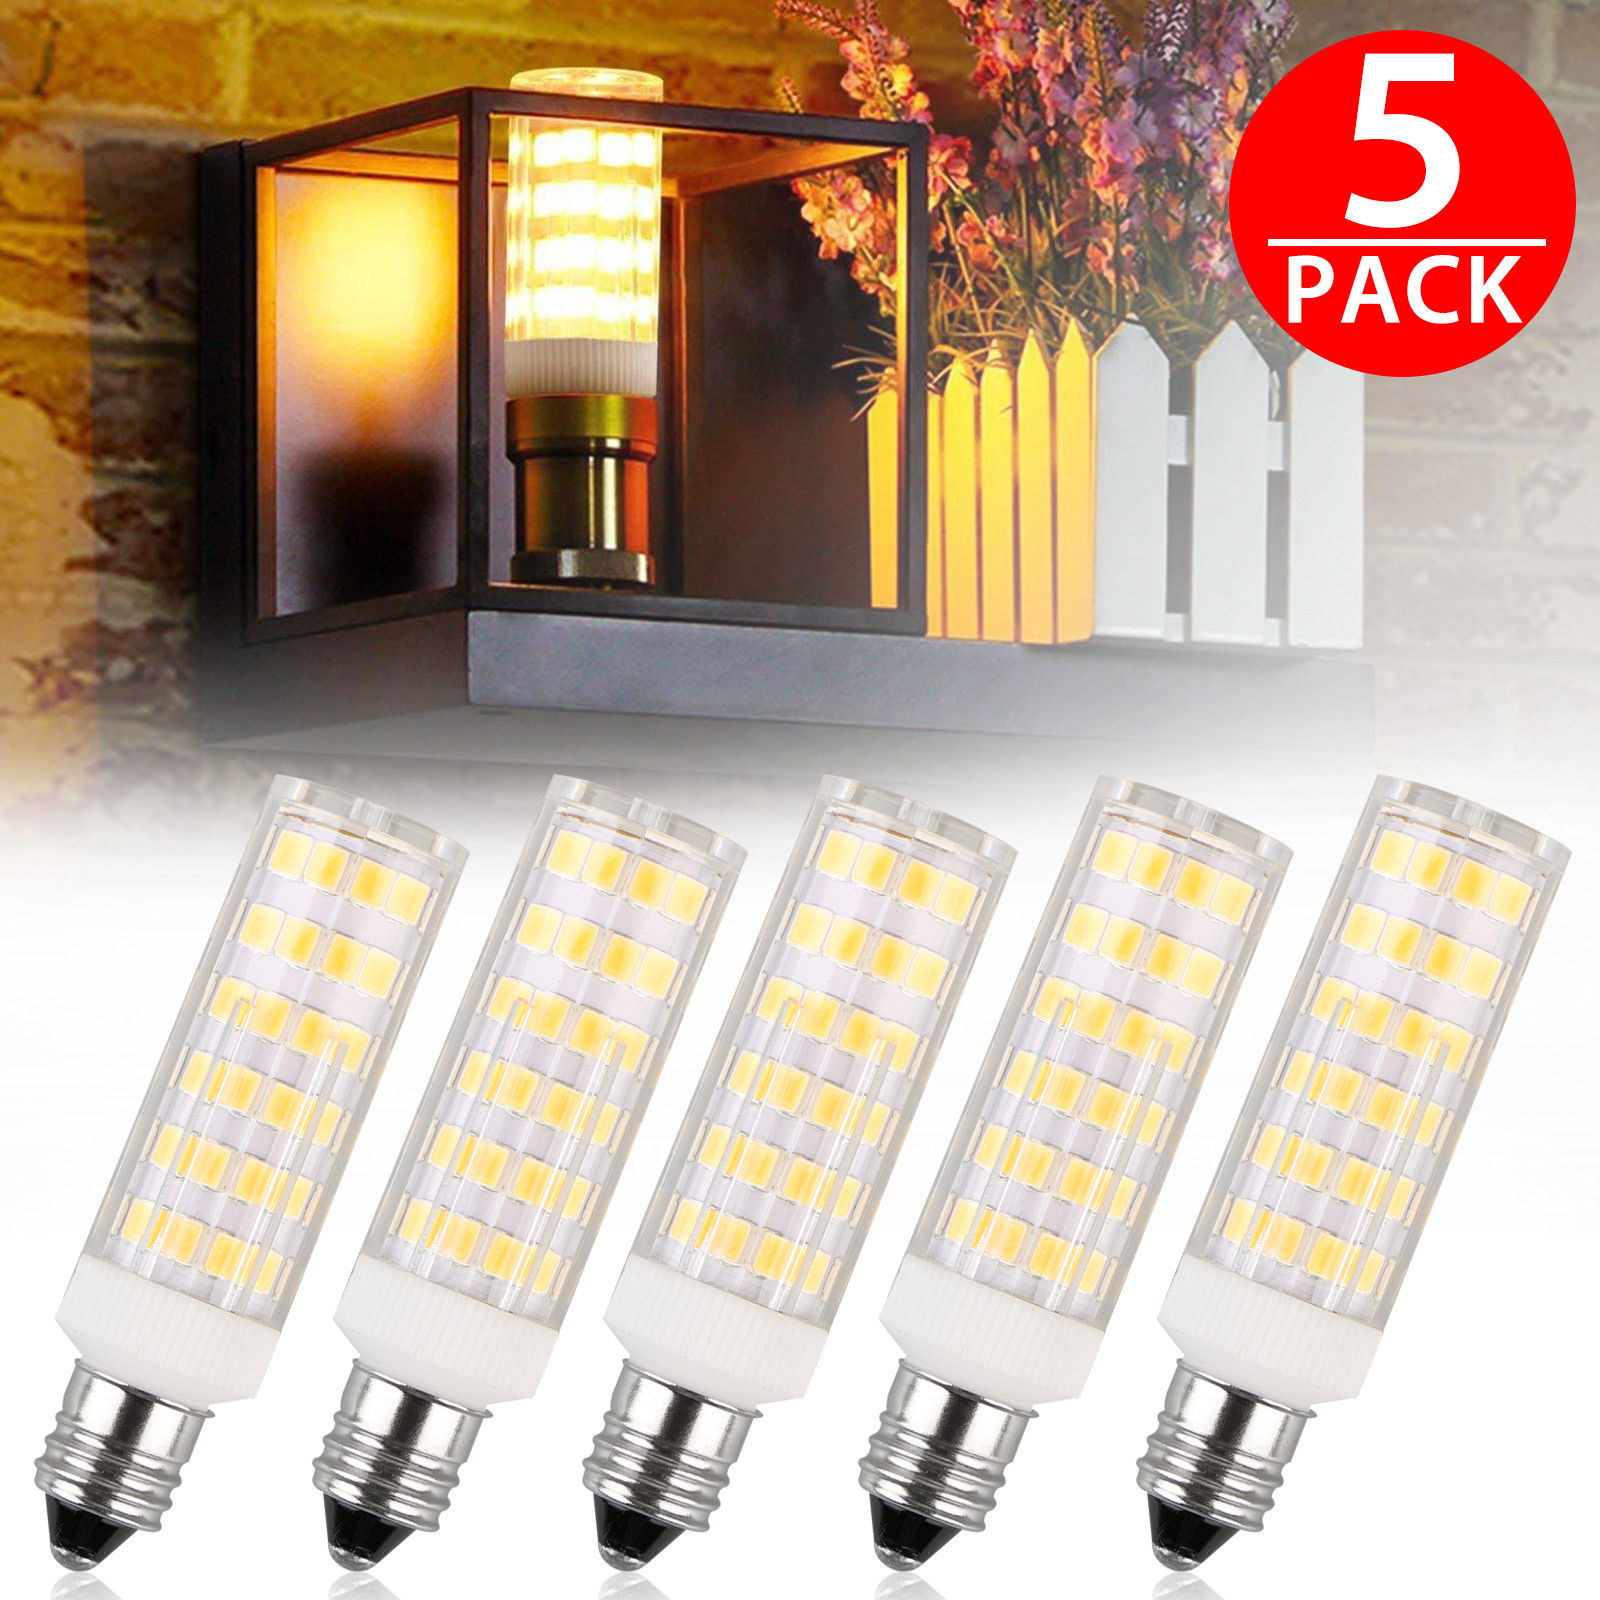 TSV E11 LED Bulb 50W 65W Halogen Bulbs Replacement,850 Lumens, Mini Candelabra Base 110V Input pack of 5